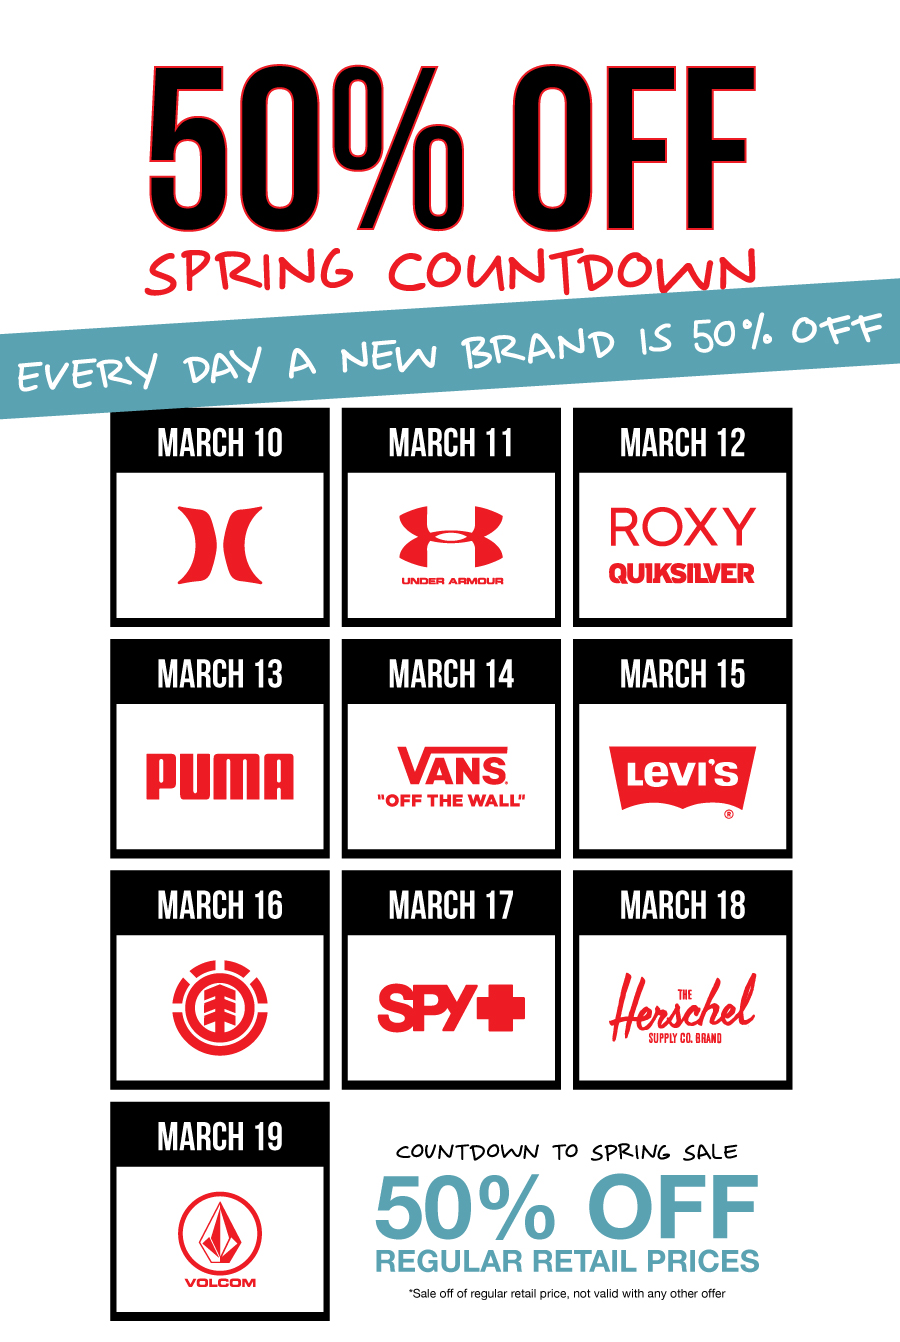 50% off Spring Countdown Sale